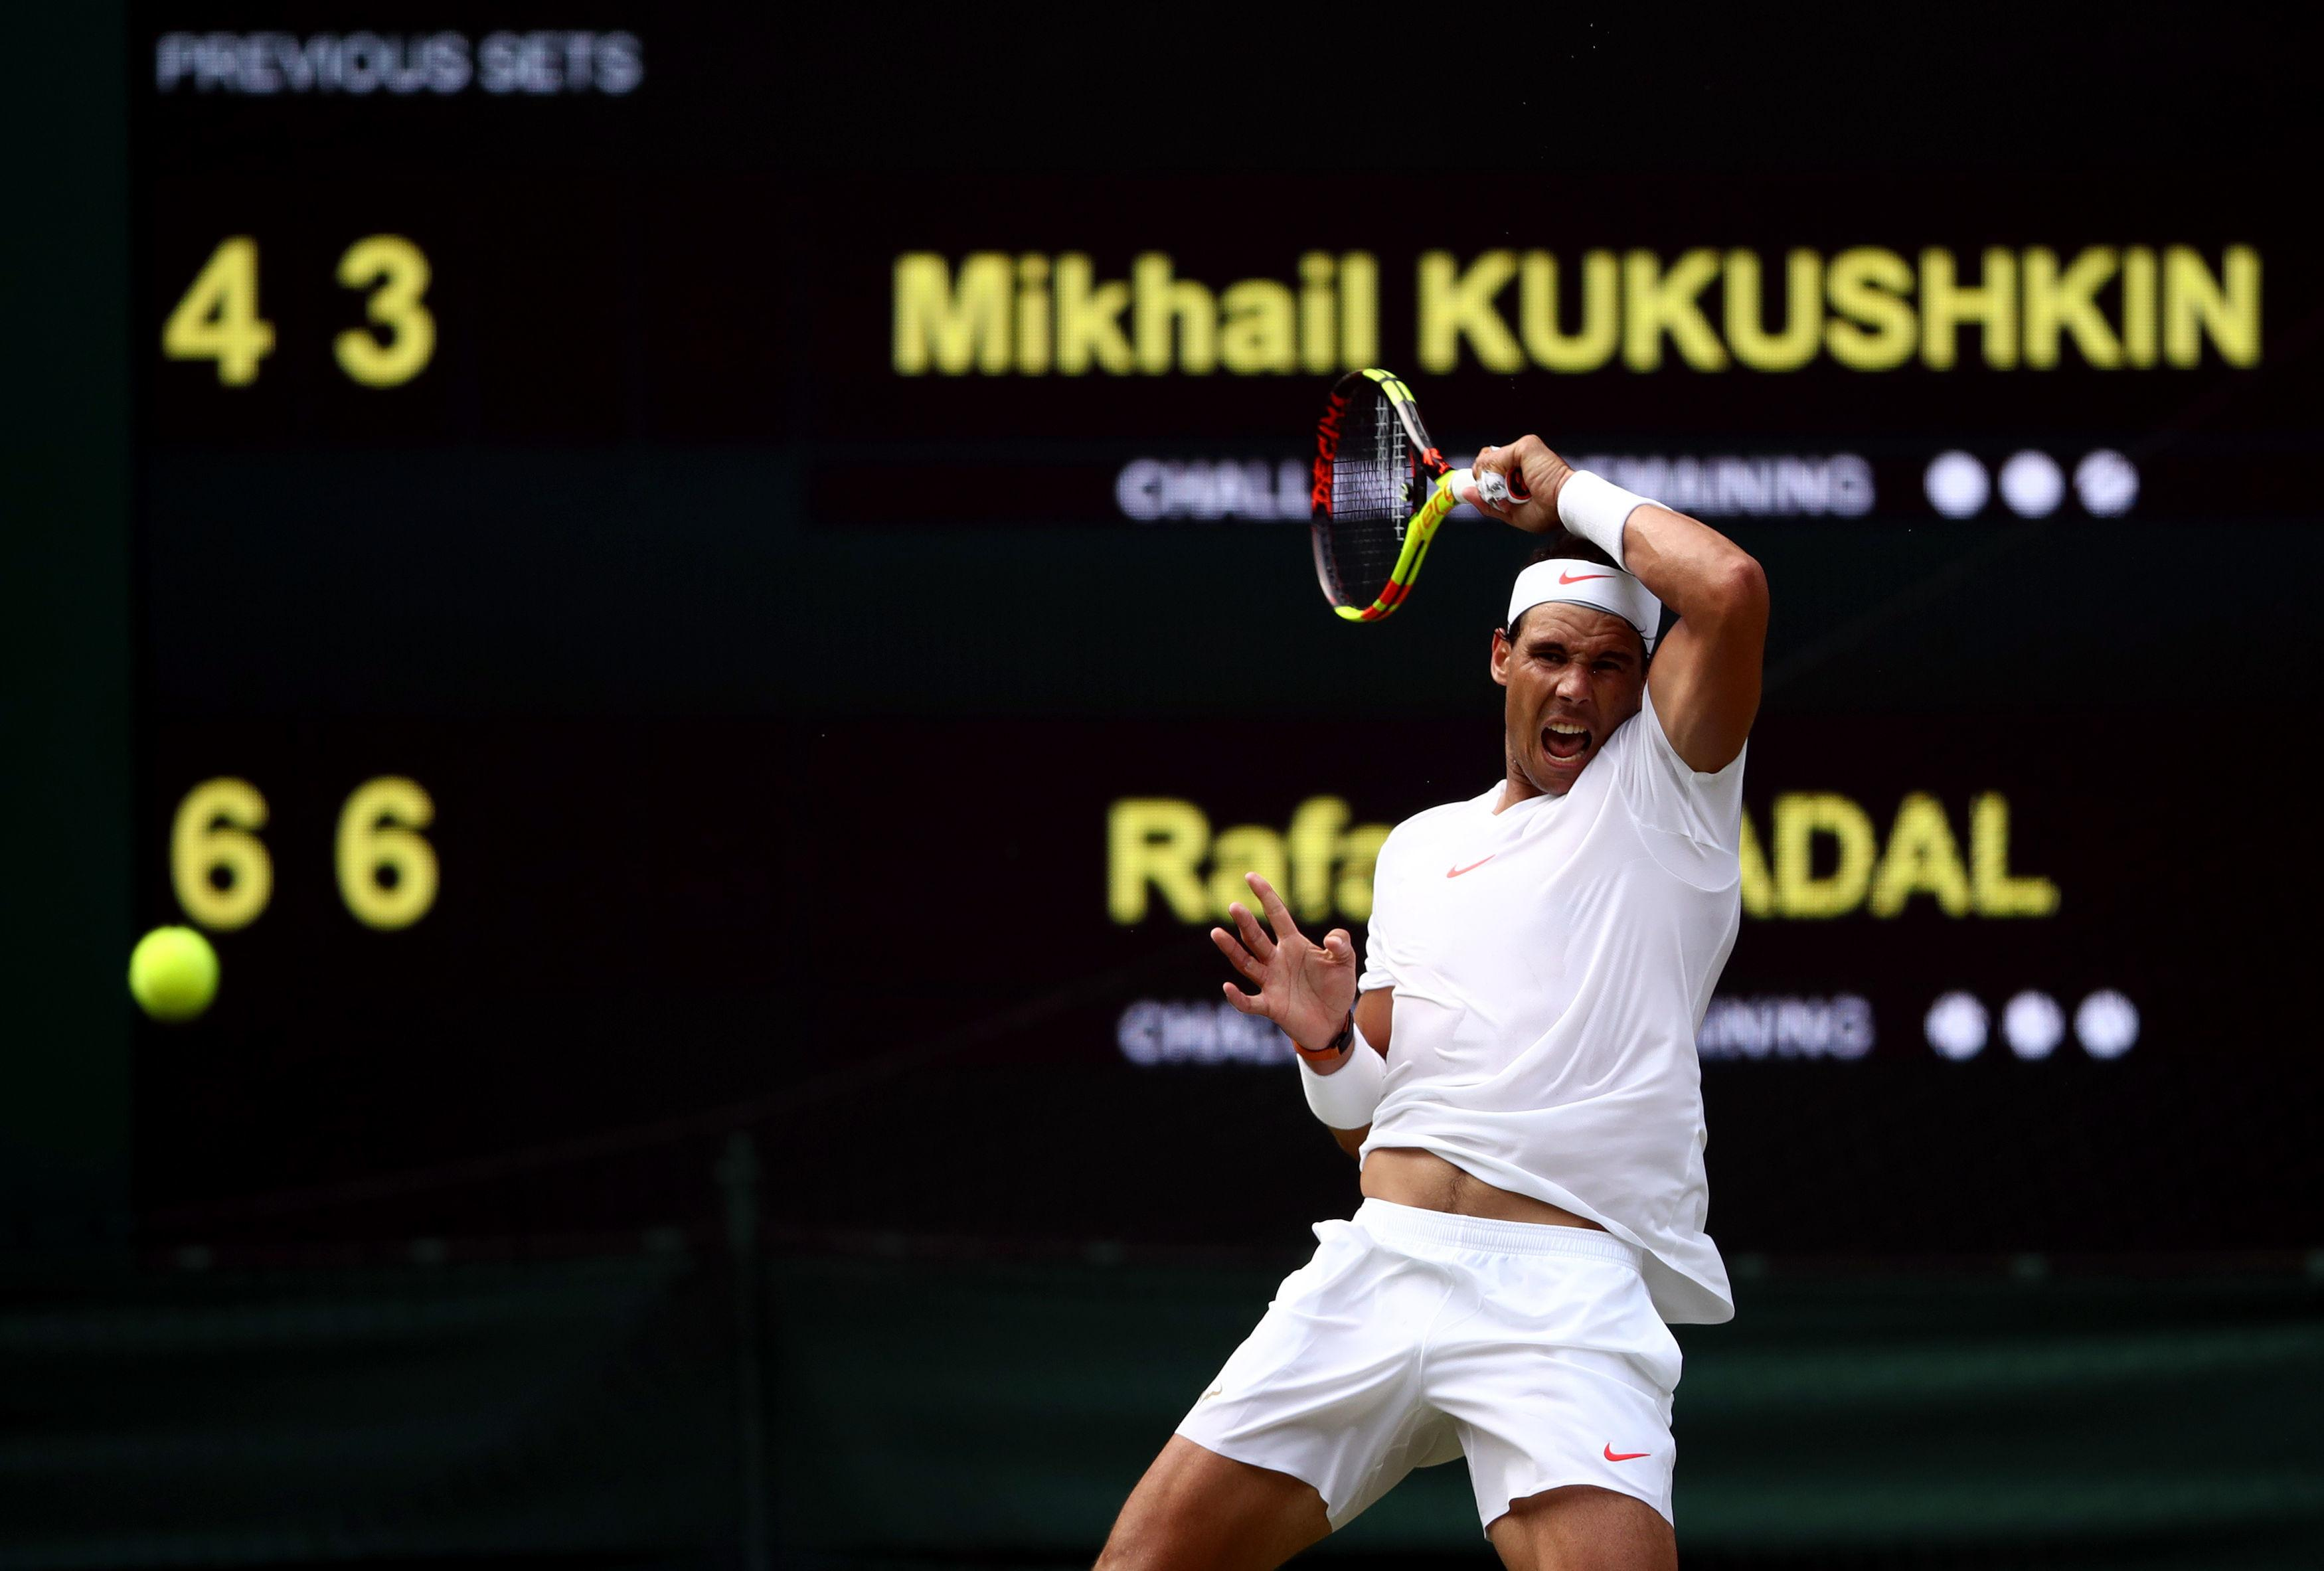 Nadal lets rip with a fearsome forehand as he cruised to a straight sets win on Centre Court